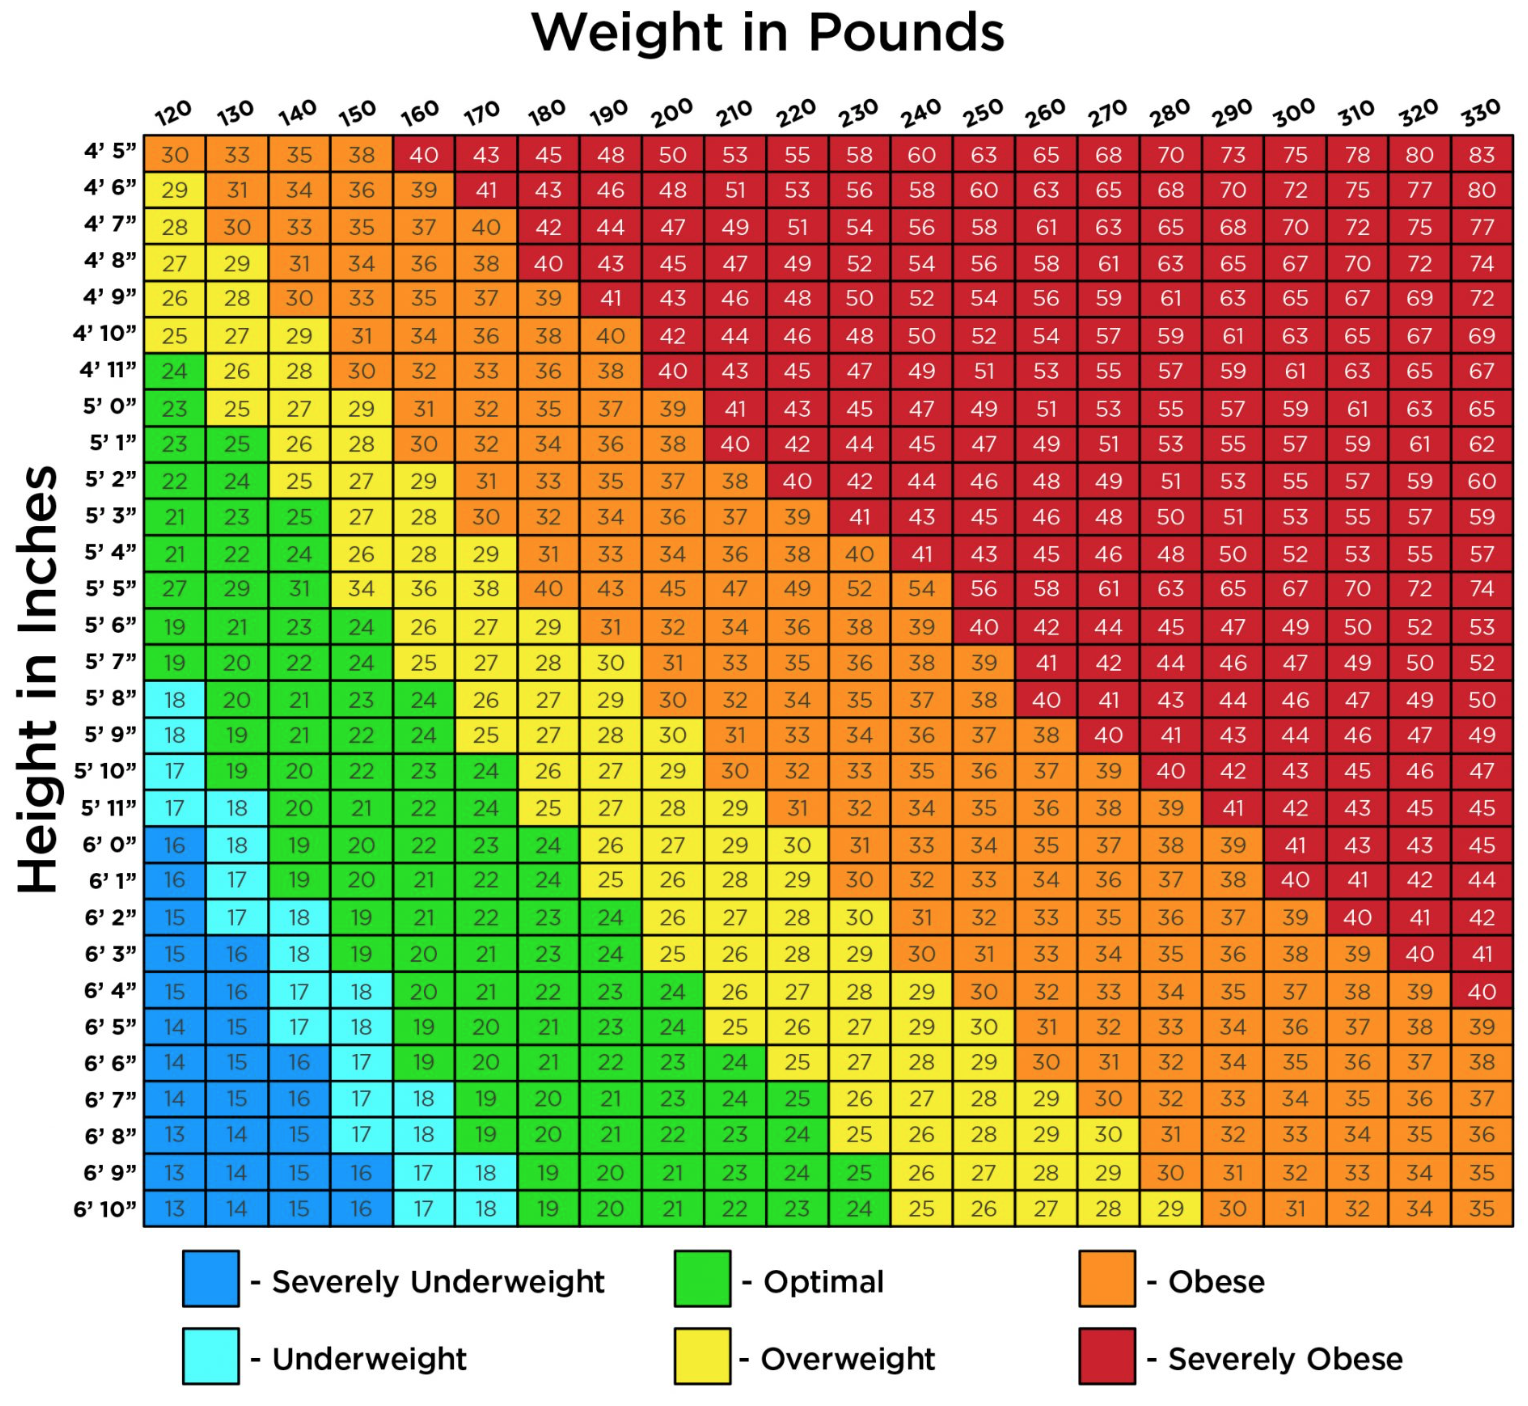 Bmi Calculator Fatgirlskinny Slimming World Weight Loss Blog